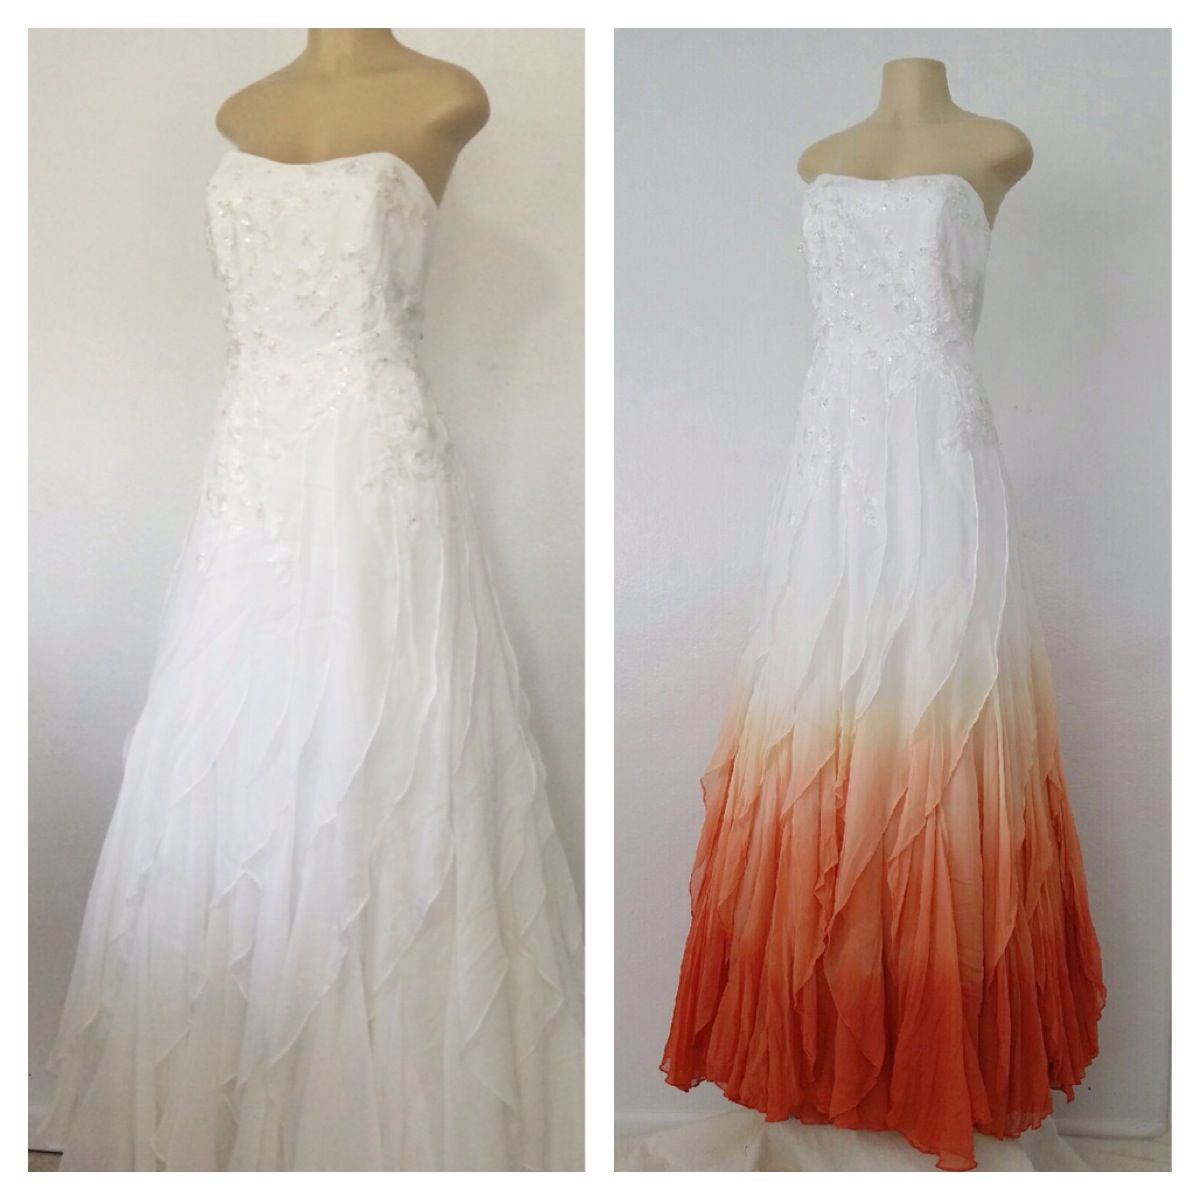 We Just Love This Orange Ombre Dyed Effect On This Wedding Gown Alterias Dye Services Are